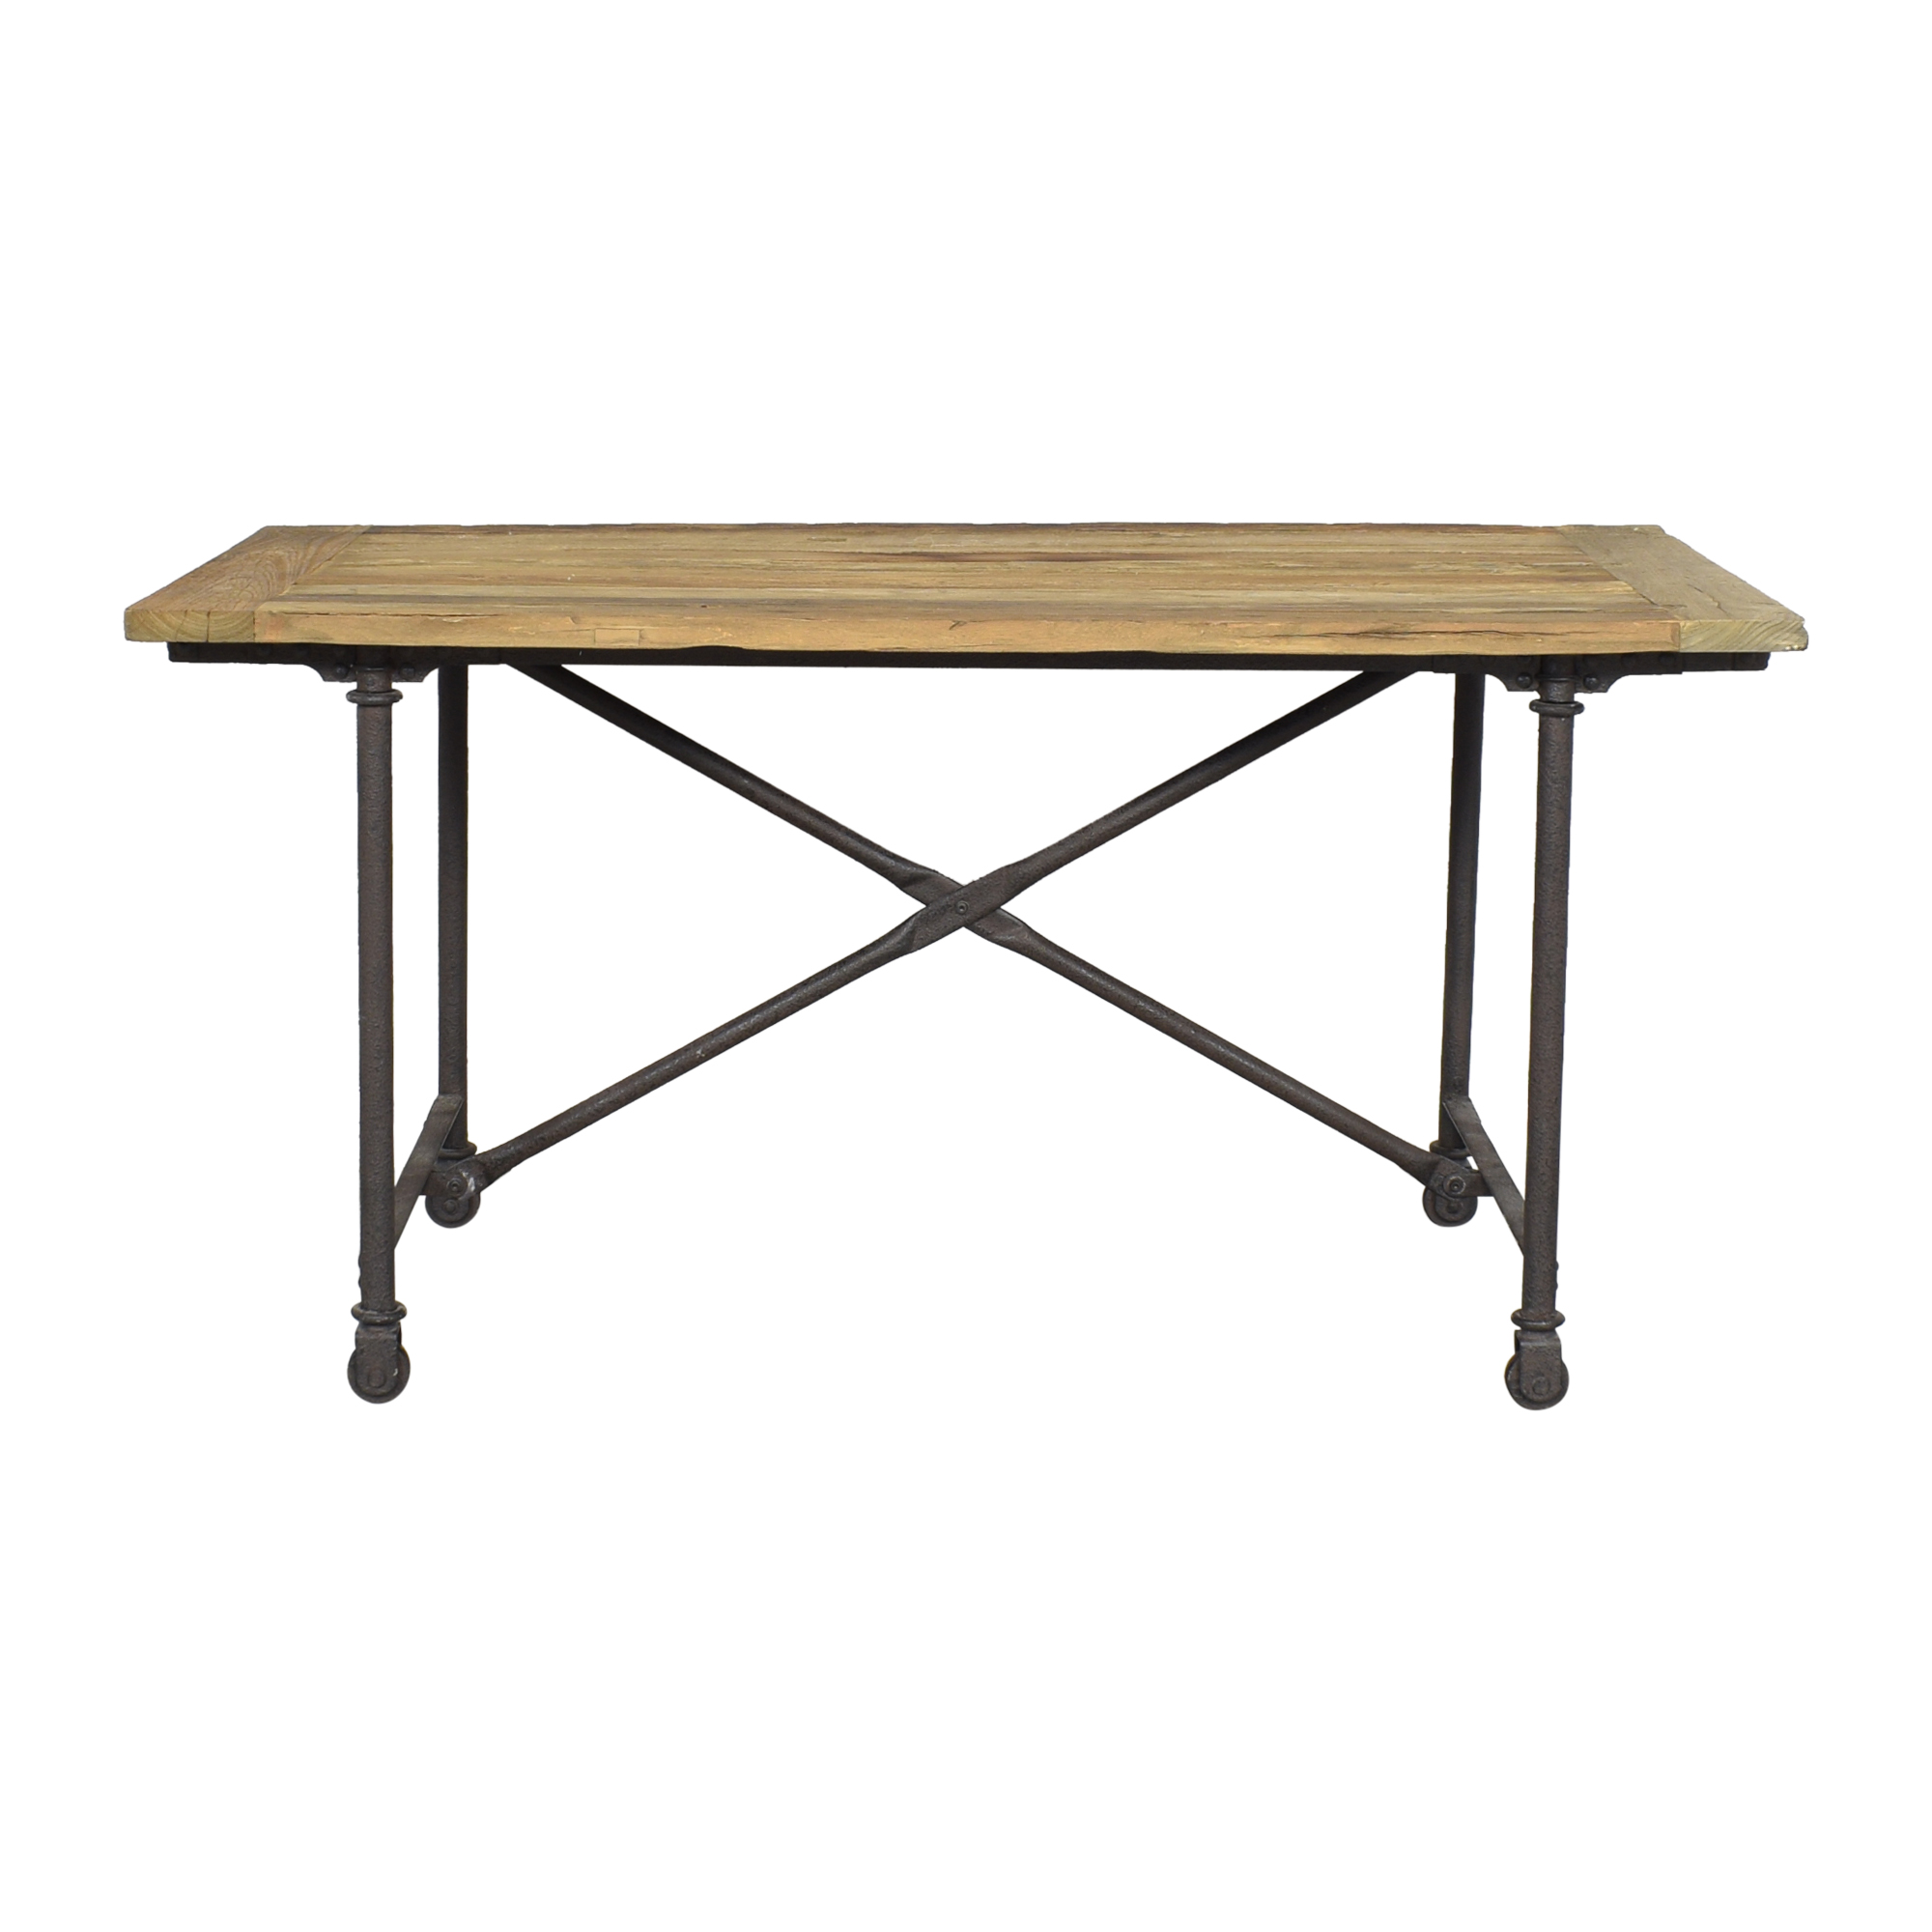 Restoration Hardware Restoration Hardware Flatiron Rectangular Dining Table for sale